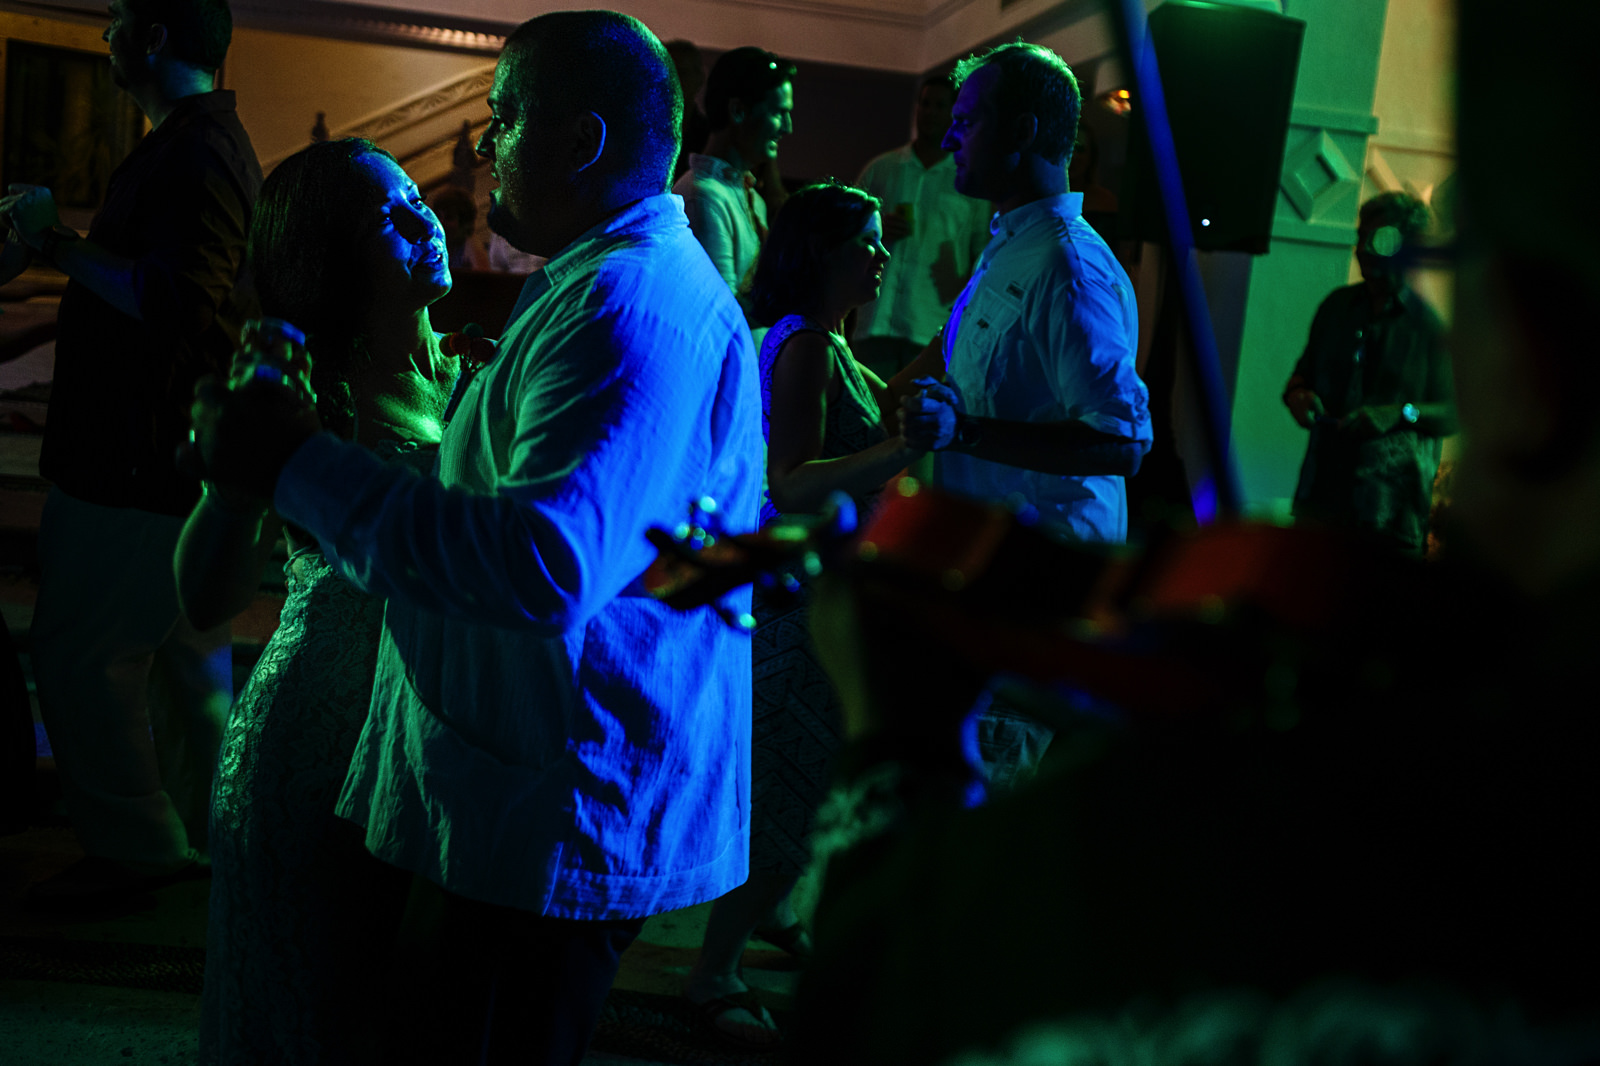 Groom and bride dancing between all their guests to the live mariachi music